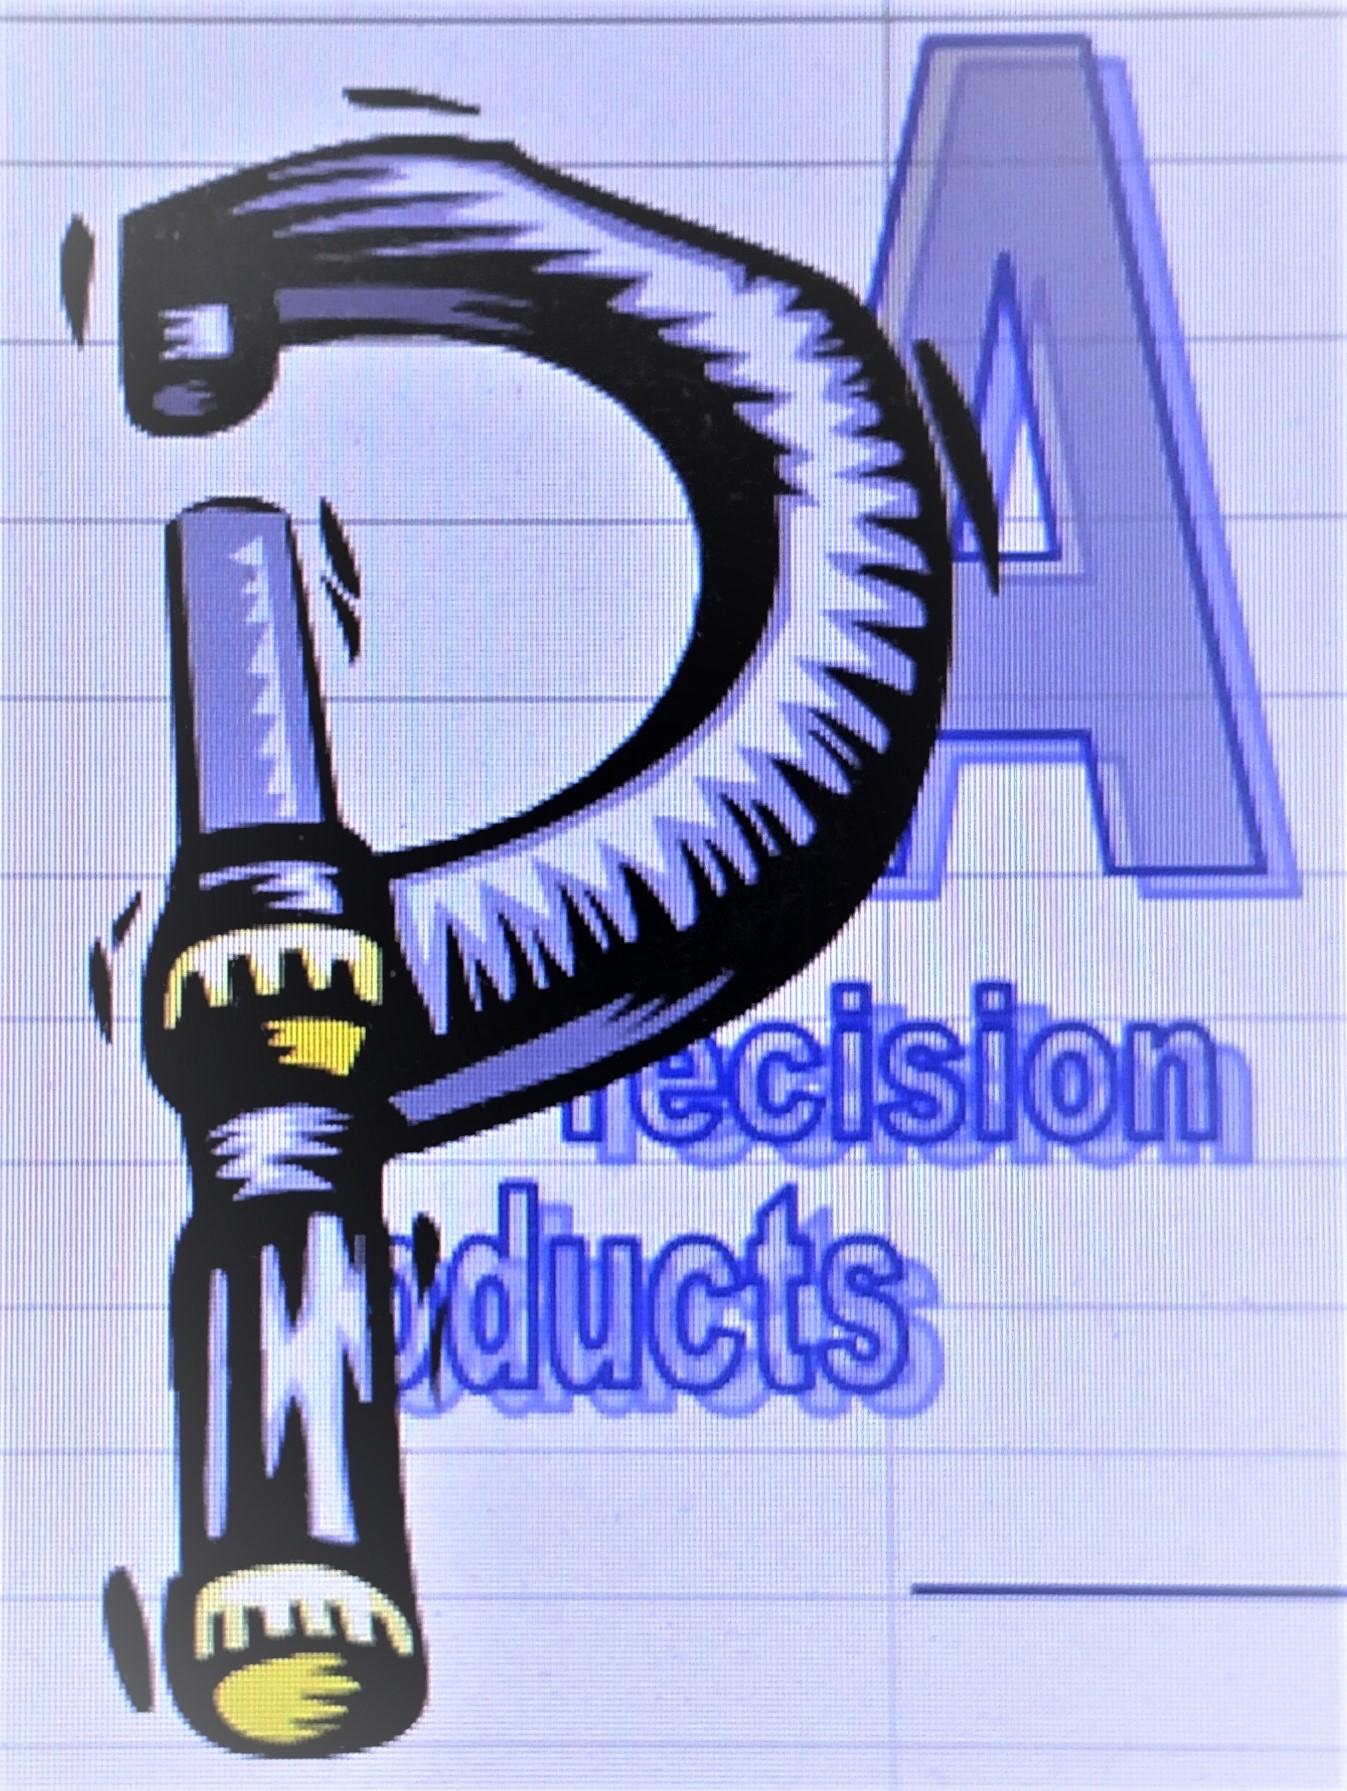 Pennsylvania Precision Products Inc.